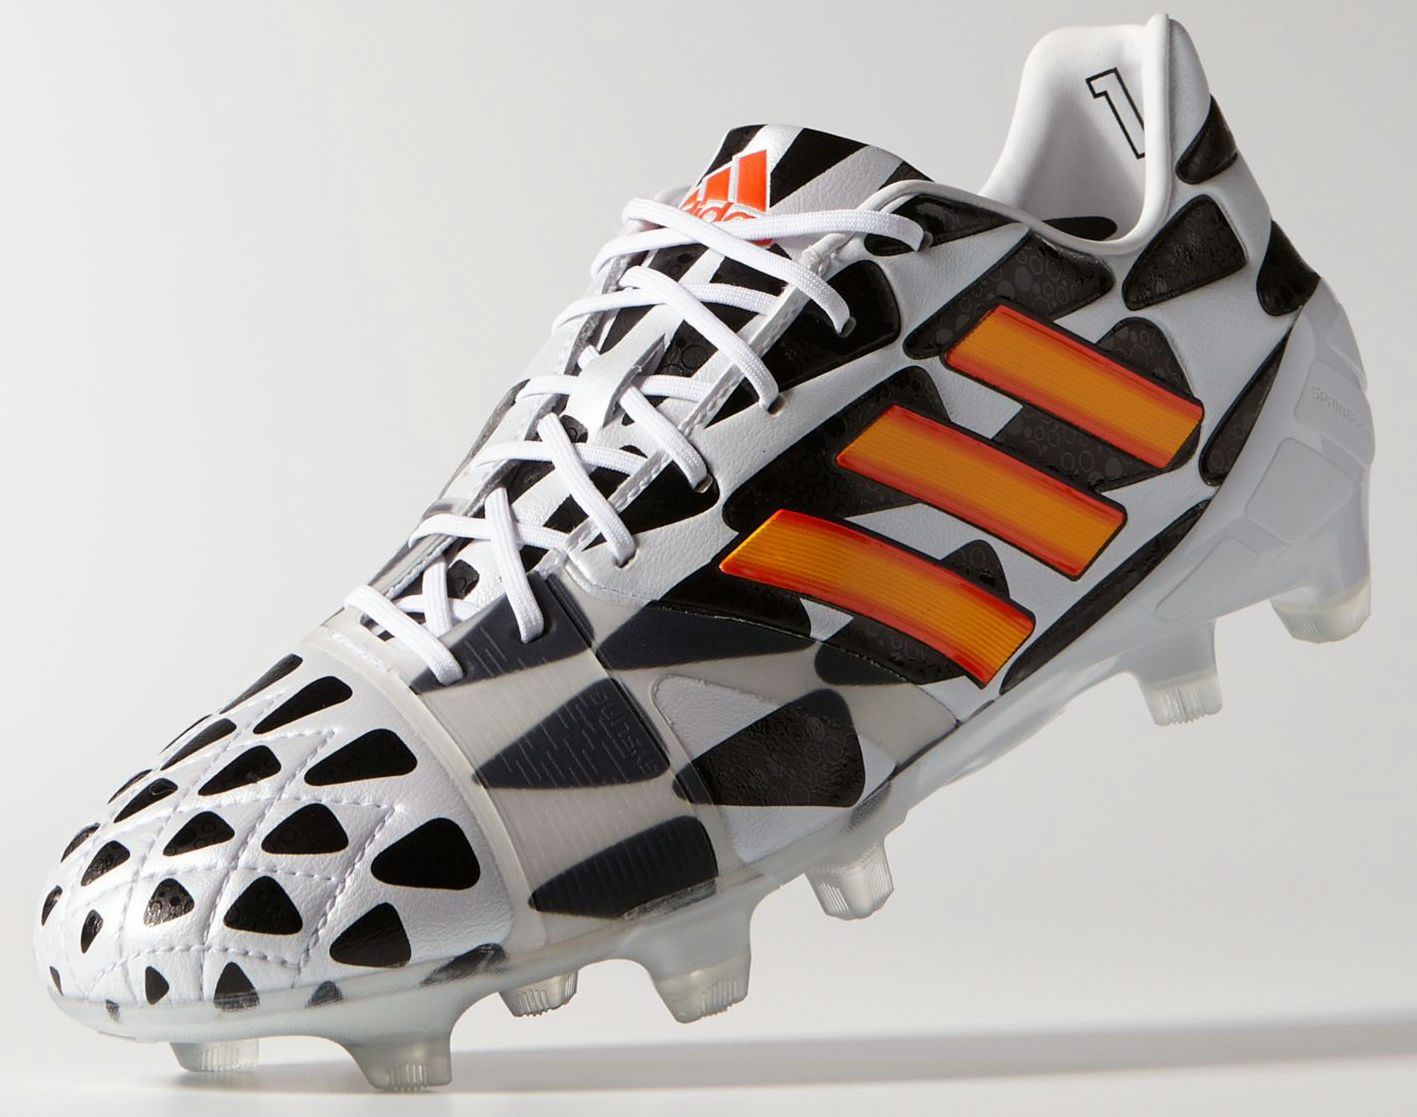 Soldado Paja Gigante  Buy cheap adidas nitrocharge white >Up to OFF30% DiscountDiscounts